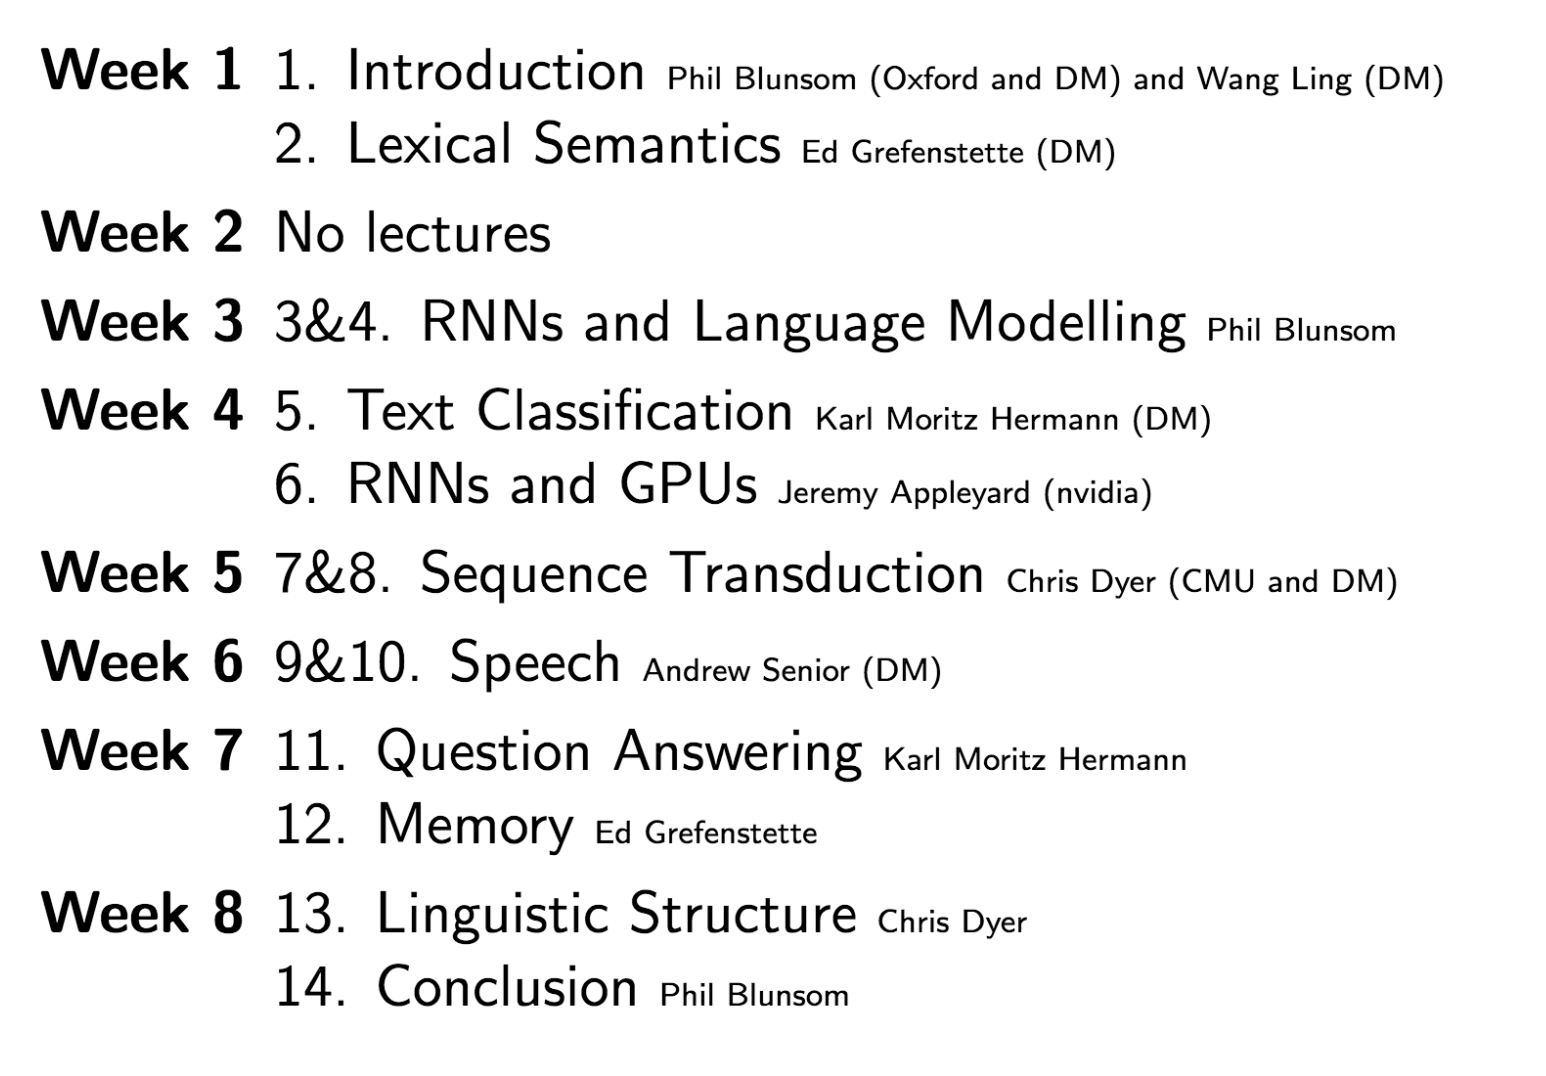 Deep Learning for Natural Language Processing at Oxford Lecture Breakdown